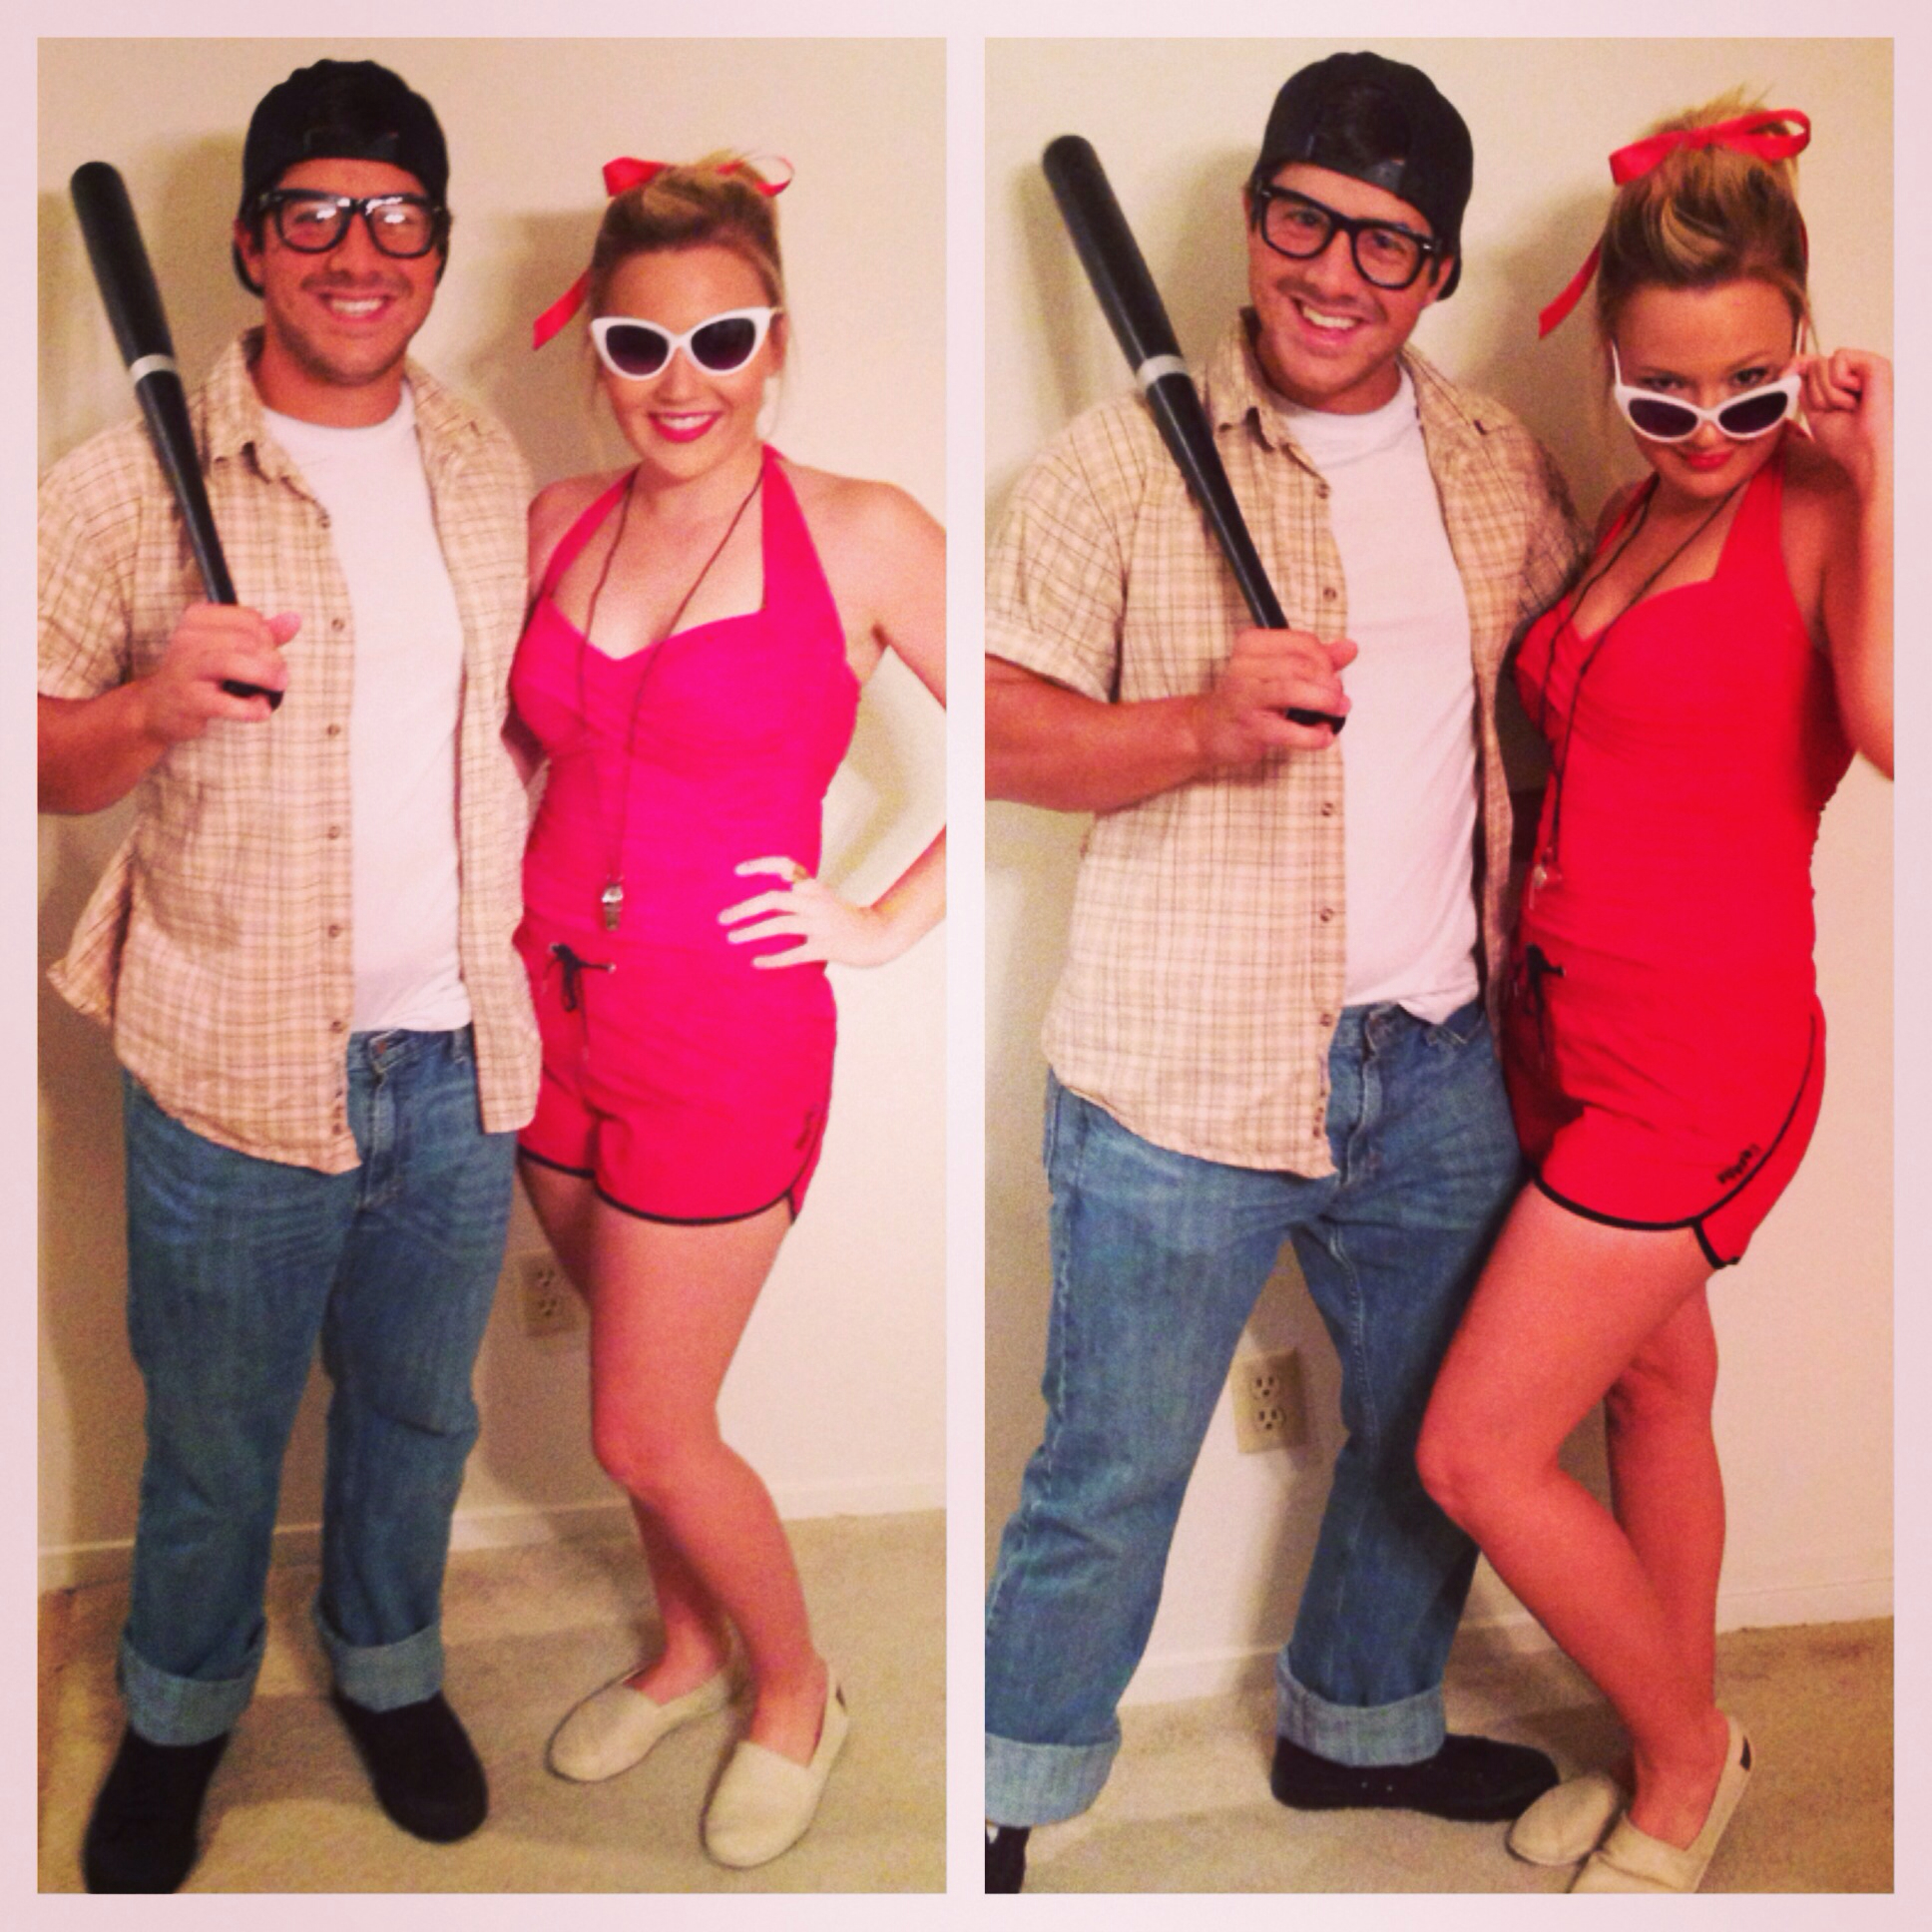 Squints-and-wendy-peffercorn-costume-the-sandlot -josh-and-wendy-peffercorn-and-squints-costume-l-34650191a4dfabc5.jpg  sc 1 st  The Parody Wiki - Fandom & Image - Squints-and-wendy-peffercorn-costume-the-sandlot-josh-and ...